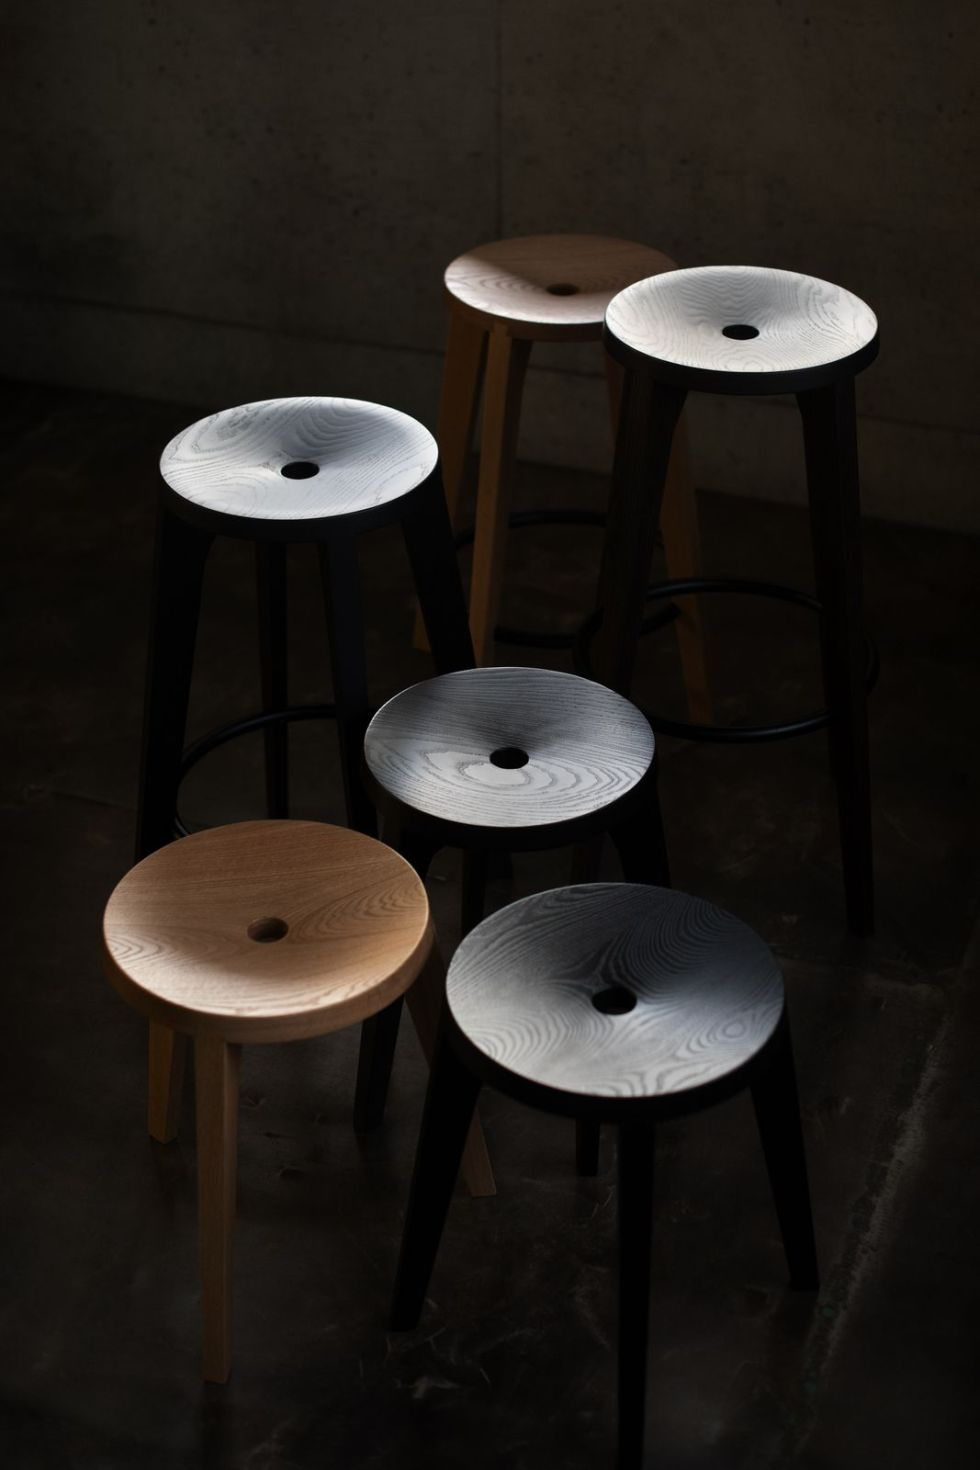 dovetail stools holm diffrent colors and heights